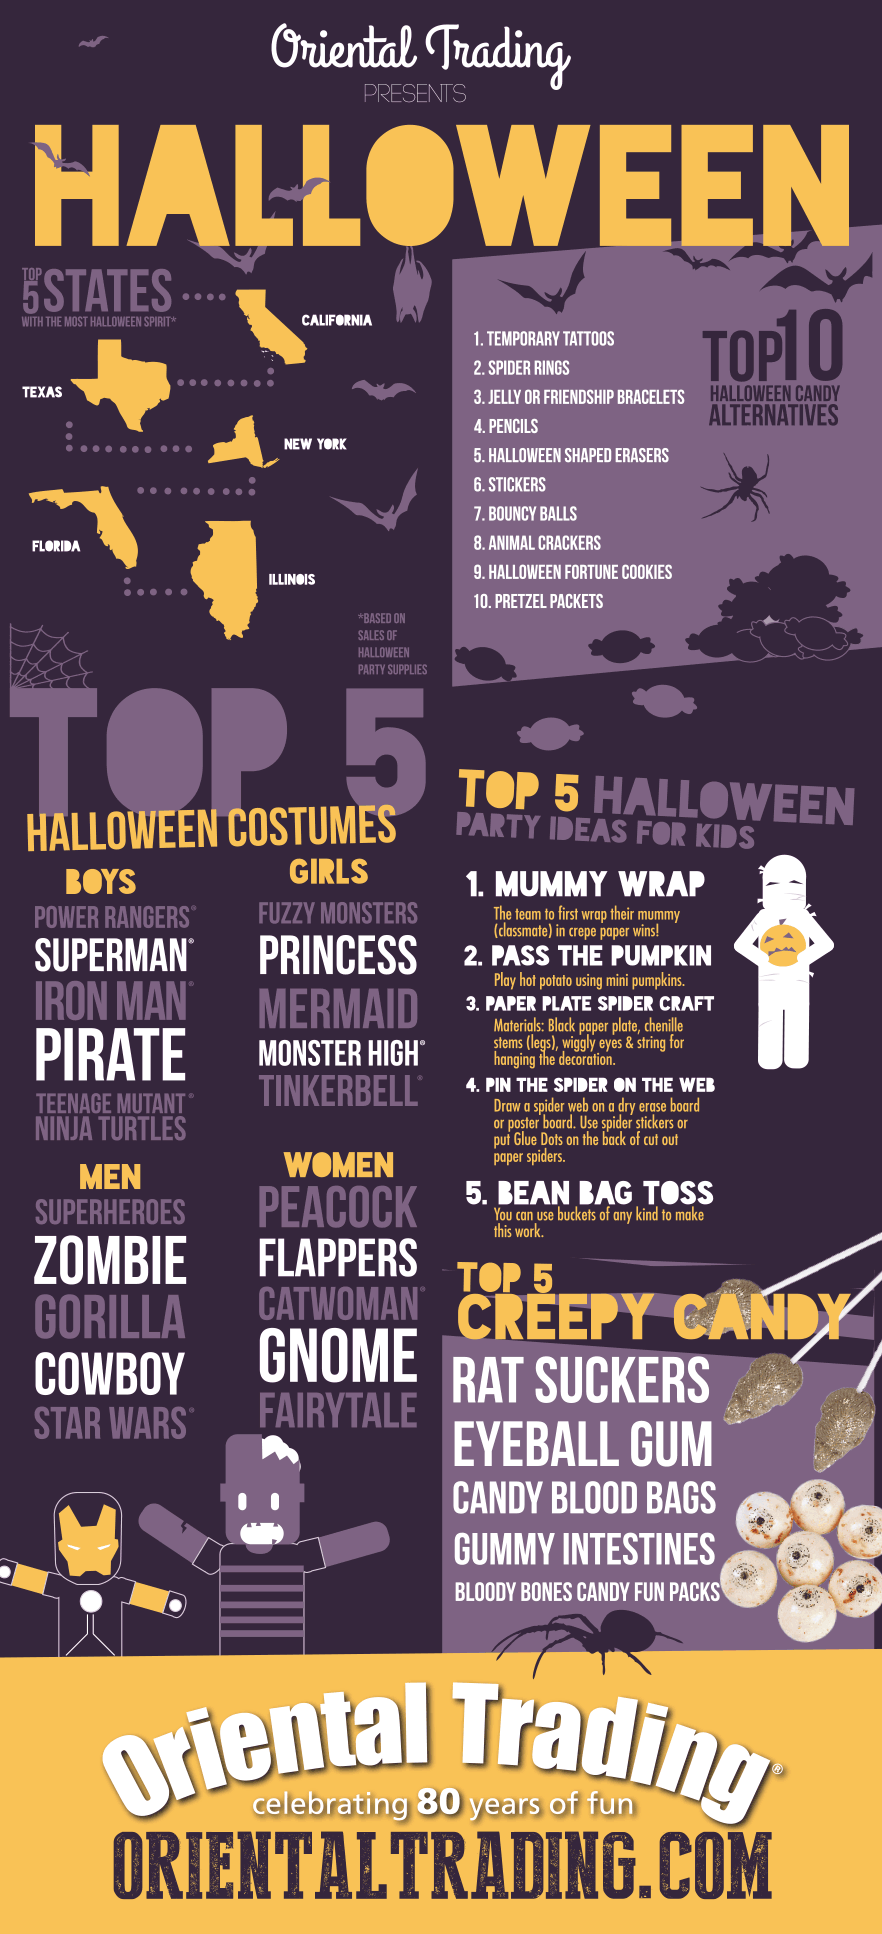 Halloween Fun Facts & Ghoulishly Good Ideas by OrientalTrading.com